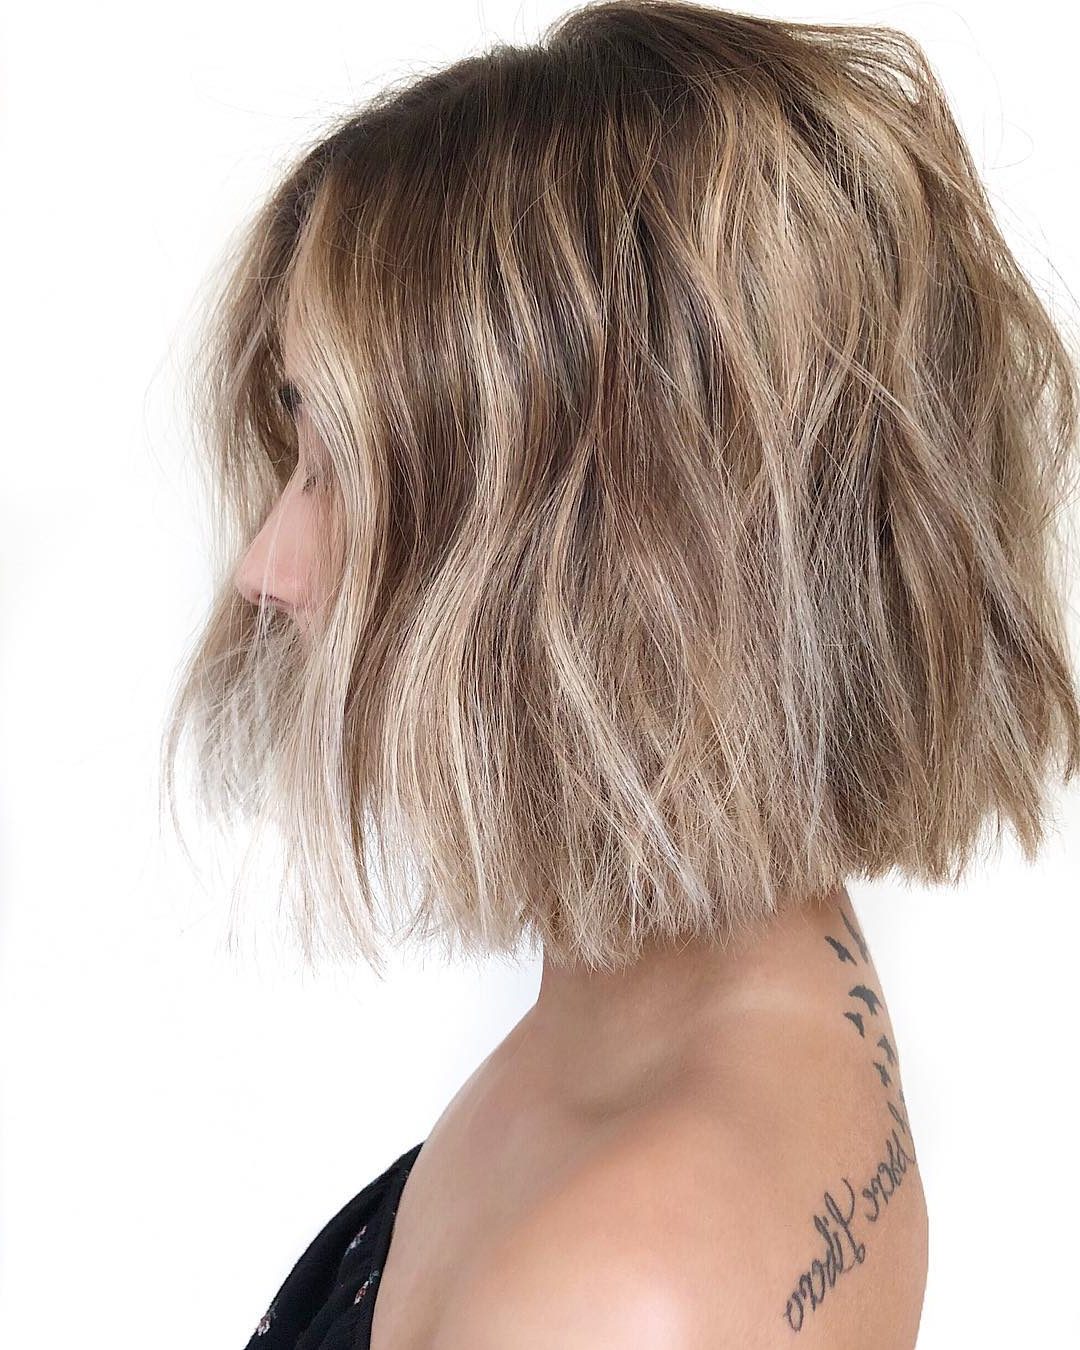 10 Trendy Messy Bob Hairstyles And Haircuts, 2019 Female Short Hair In Most Popular Cute Bangs And Messy Texture Hairstyles (View 5 of 20)